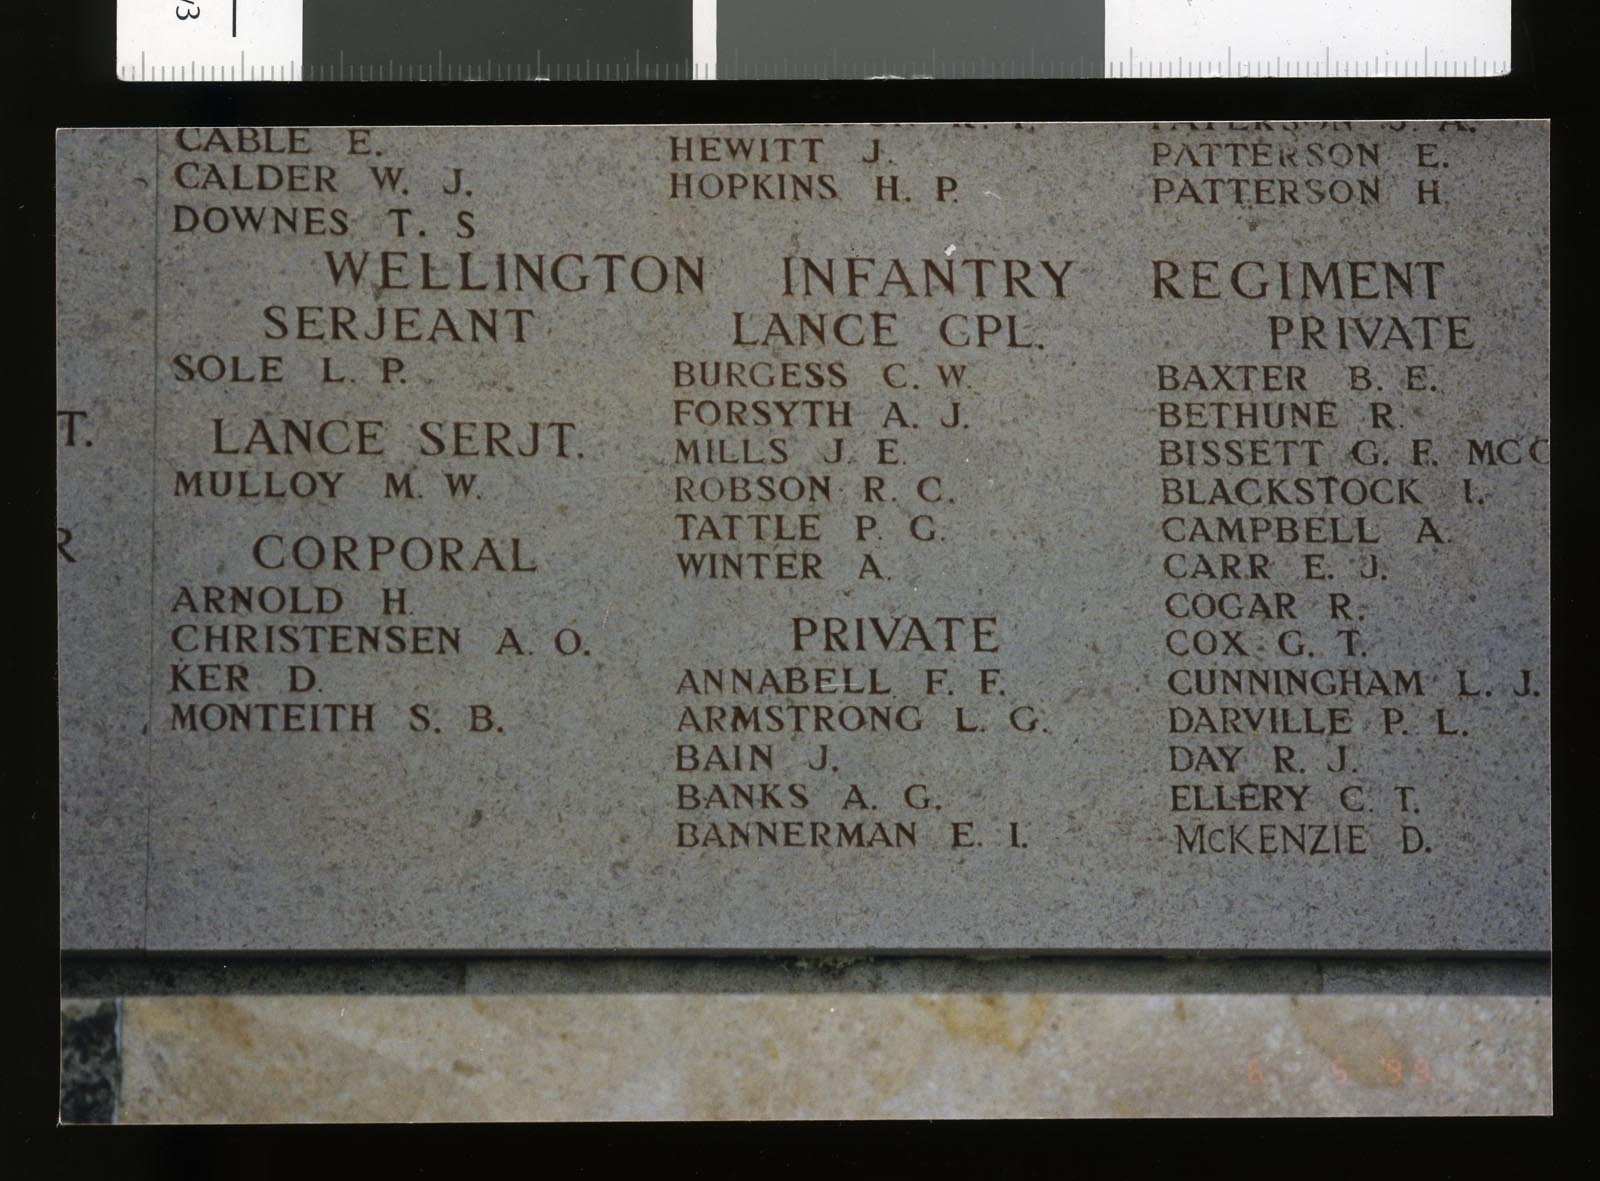 Lone Pine Memorial - including the name of Edmund I Bannerman